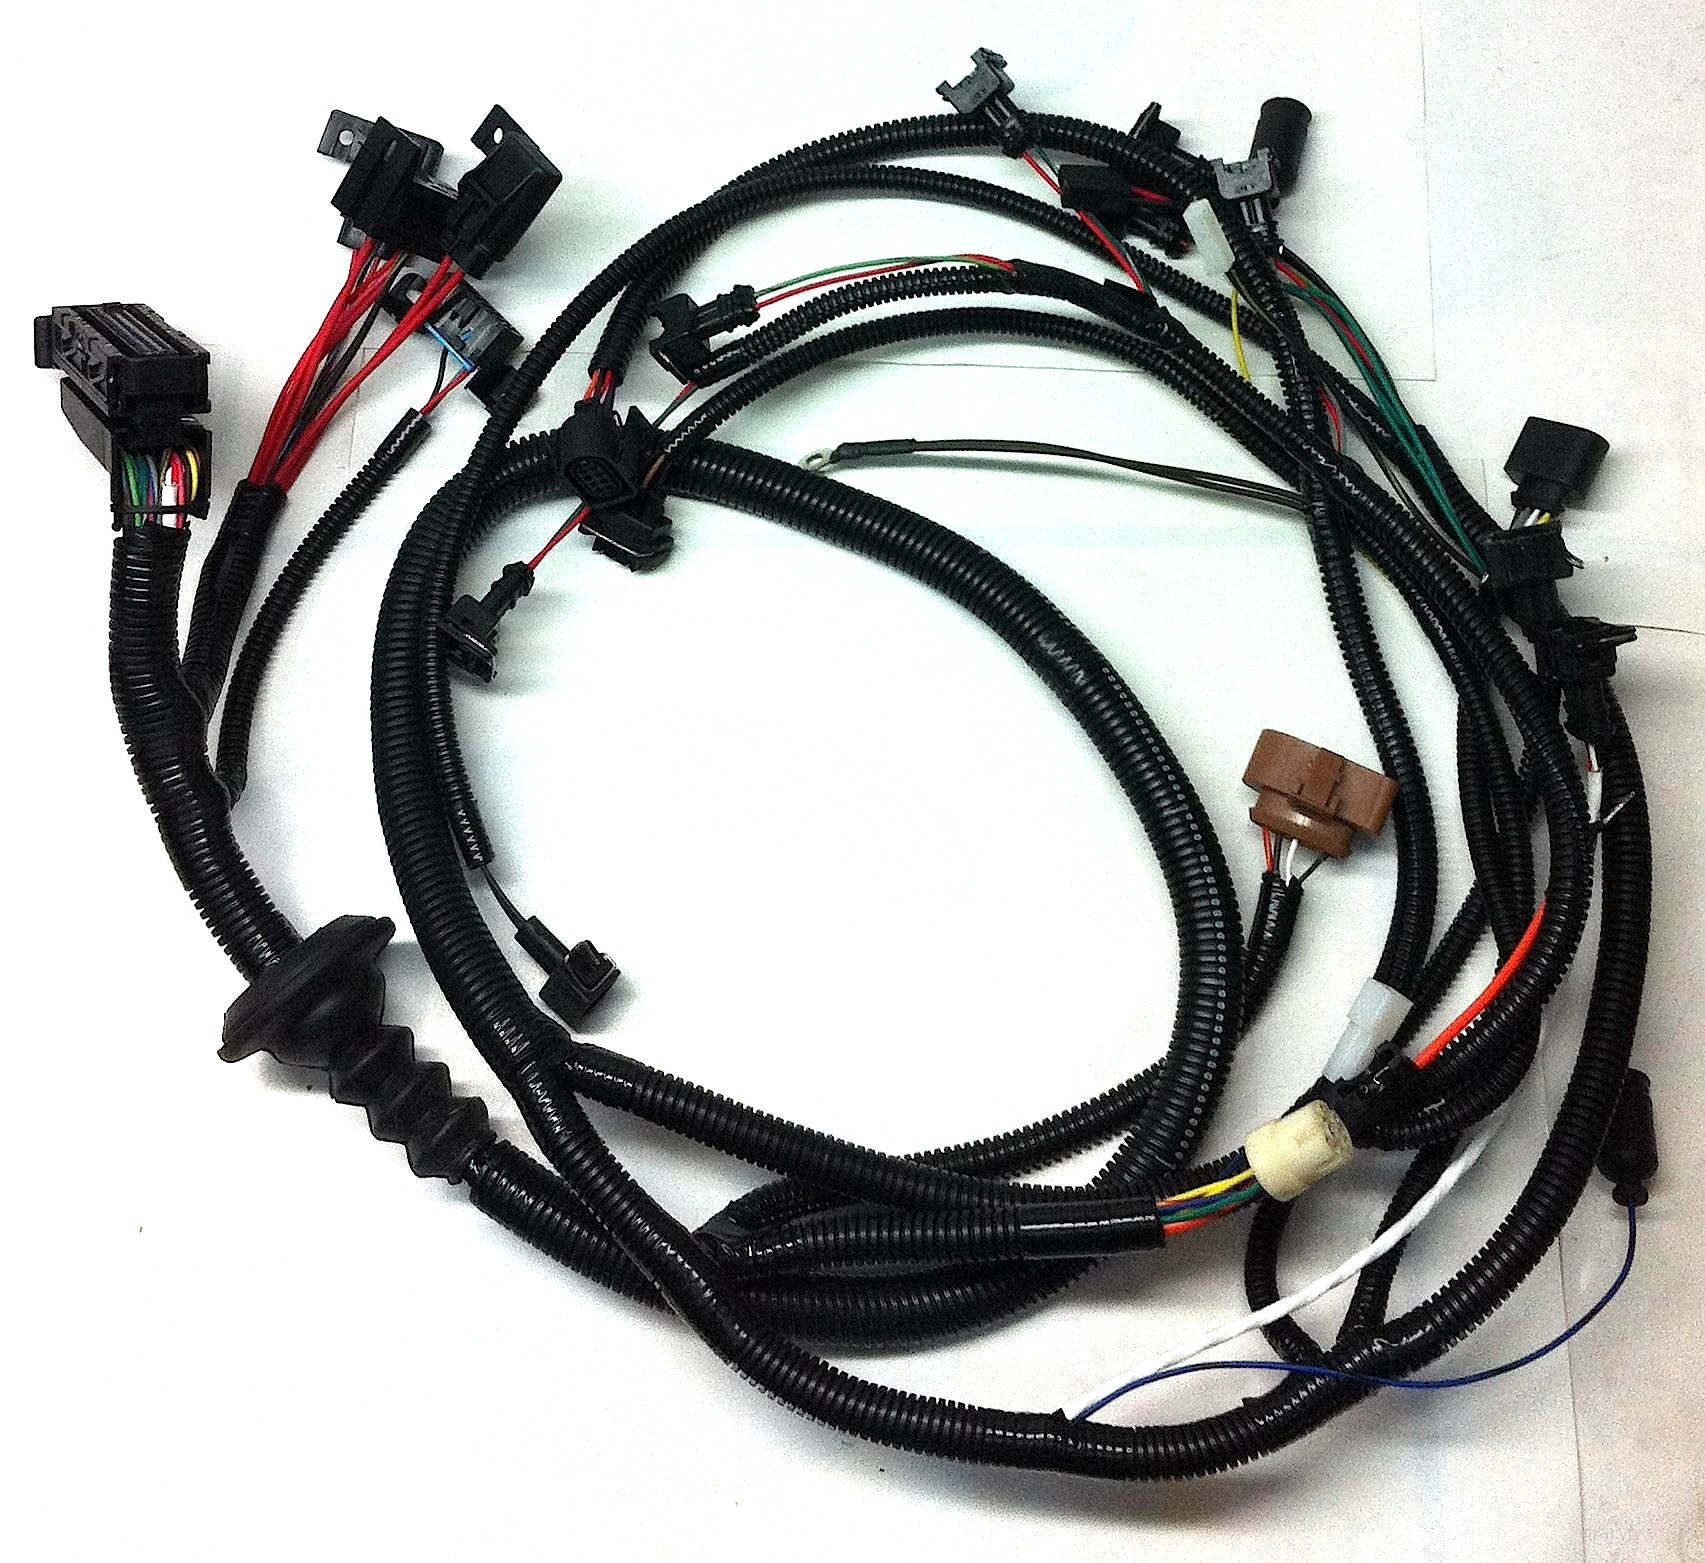 2LR / Tiico Conversion Wiring Harness Wiring Harness on